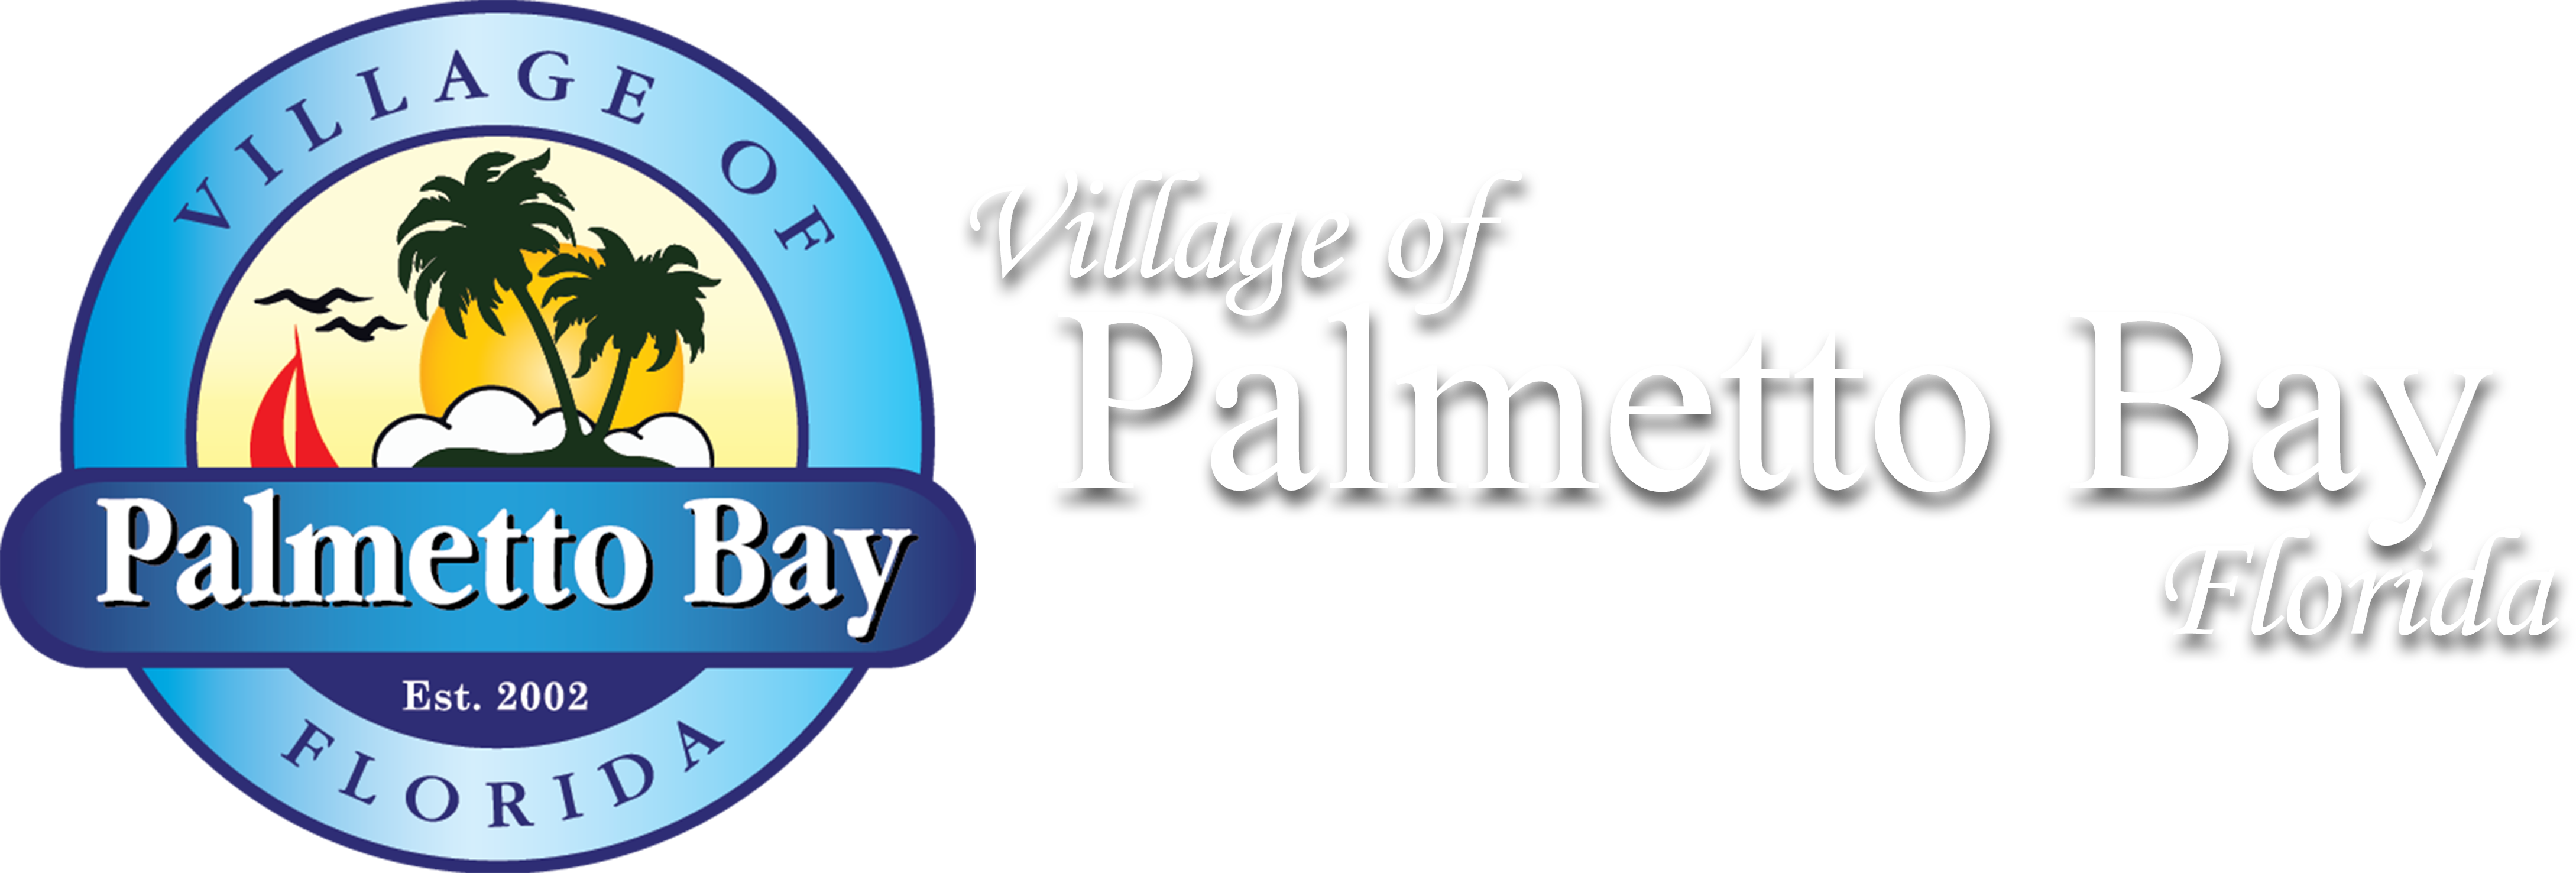 Village of Palmetto Bay seal and logo